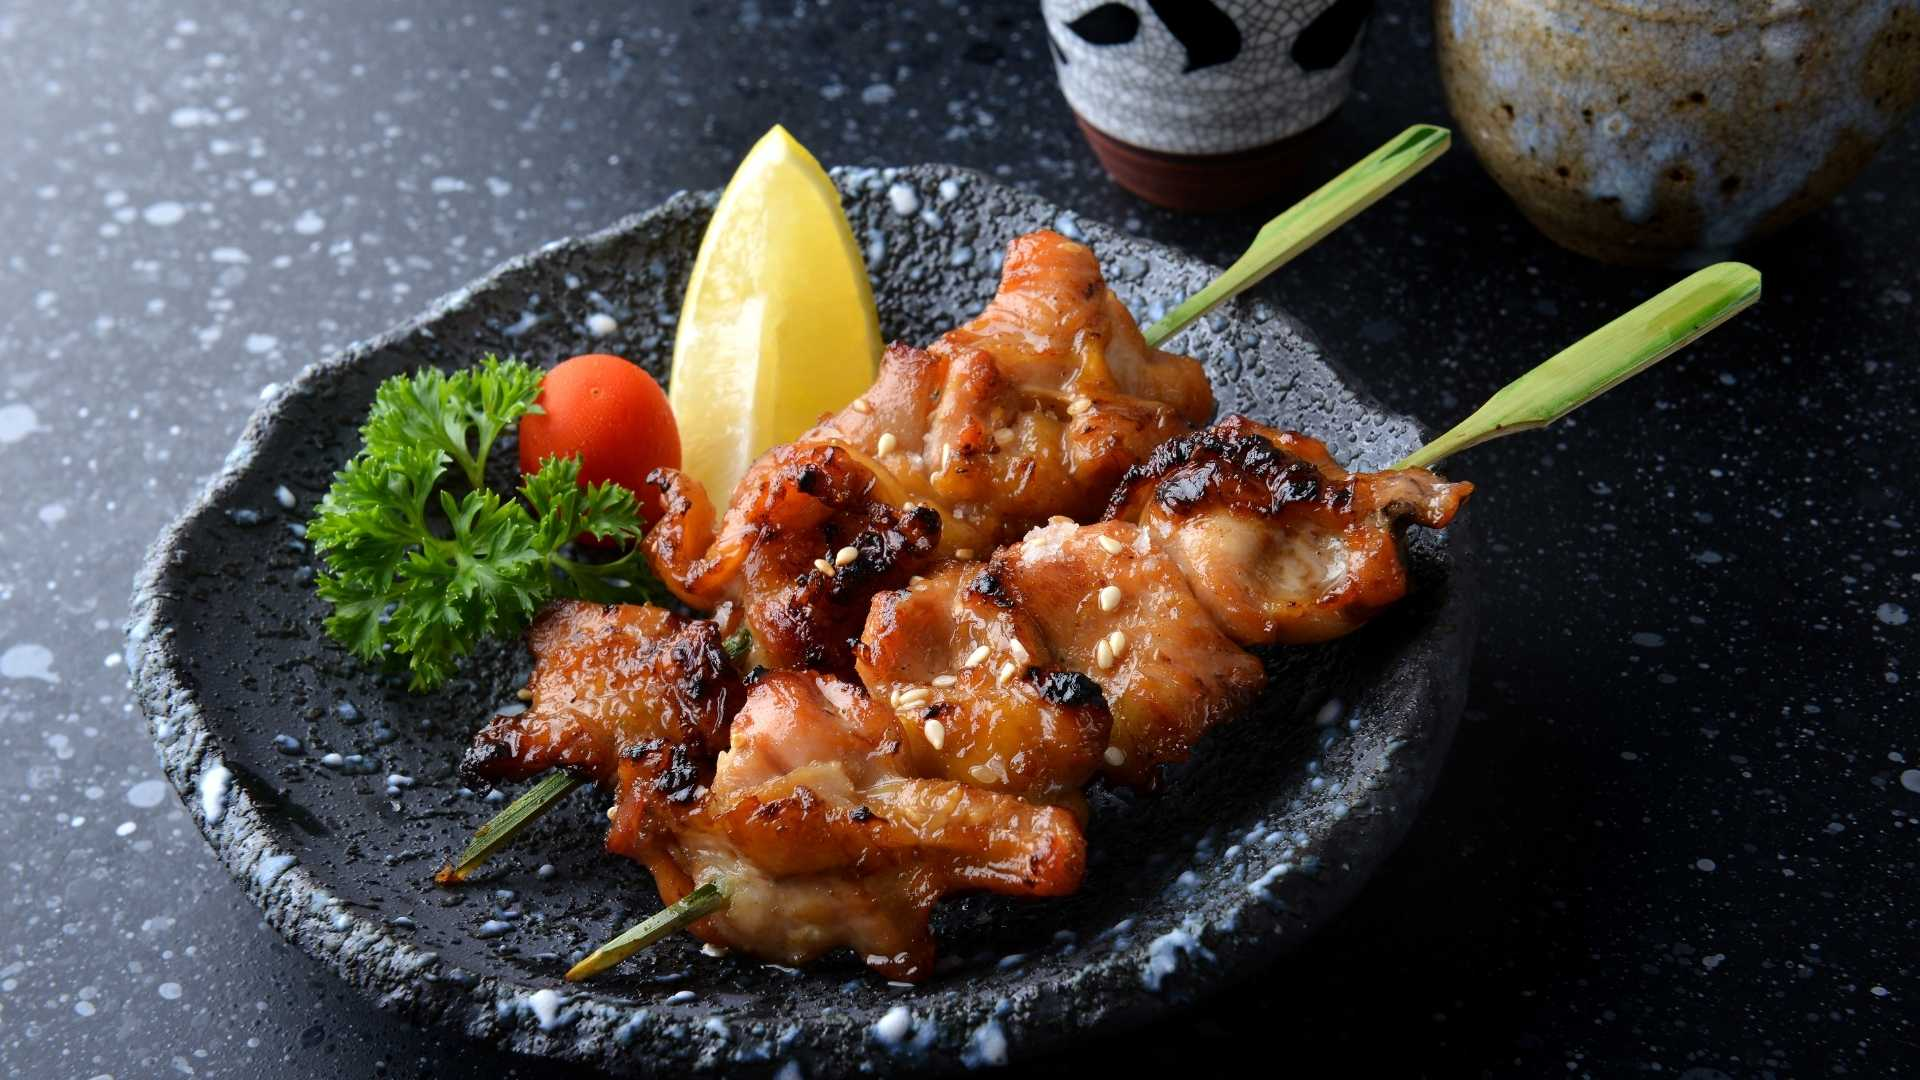 All the different types of yakitori you can get